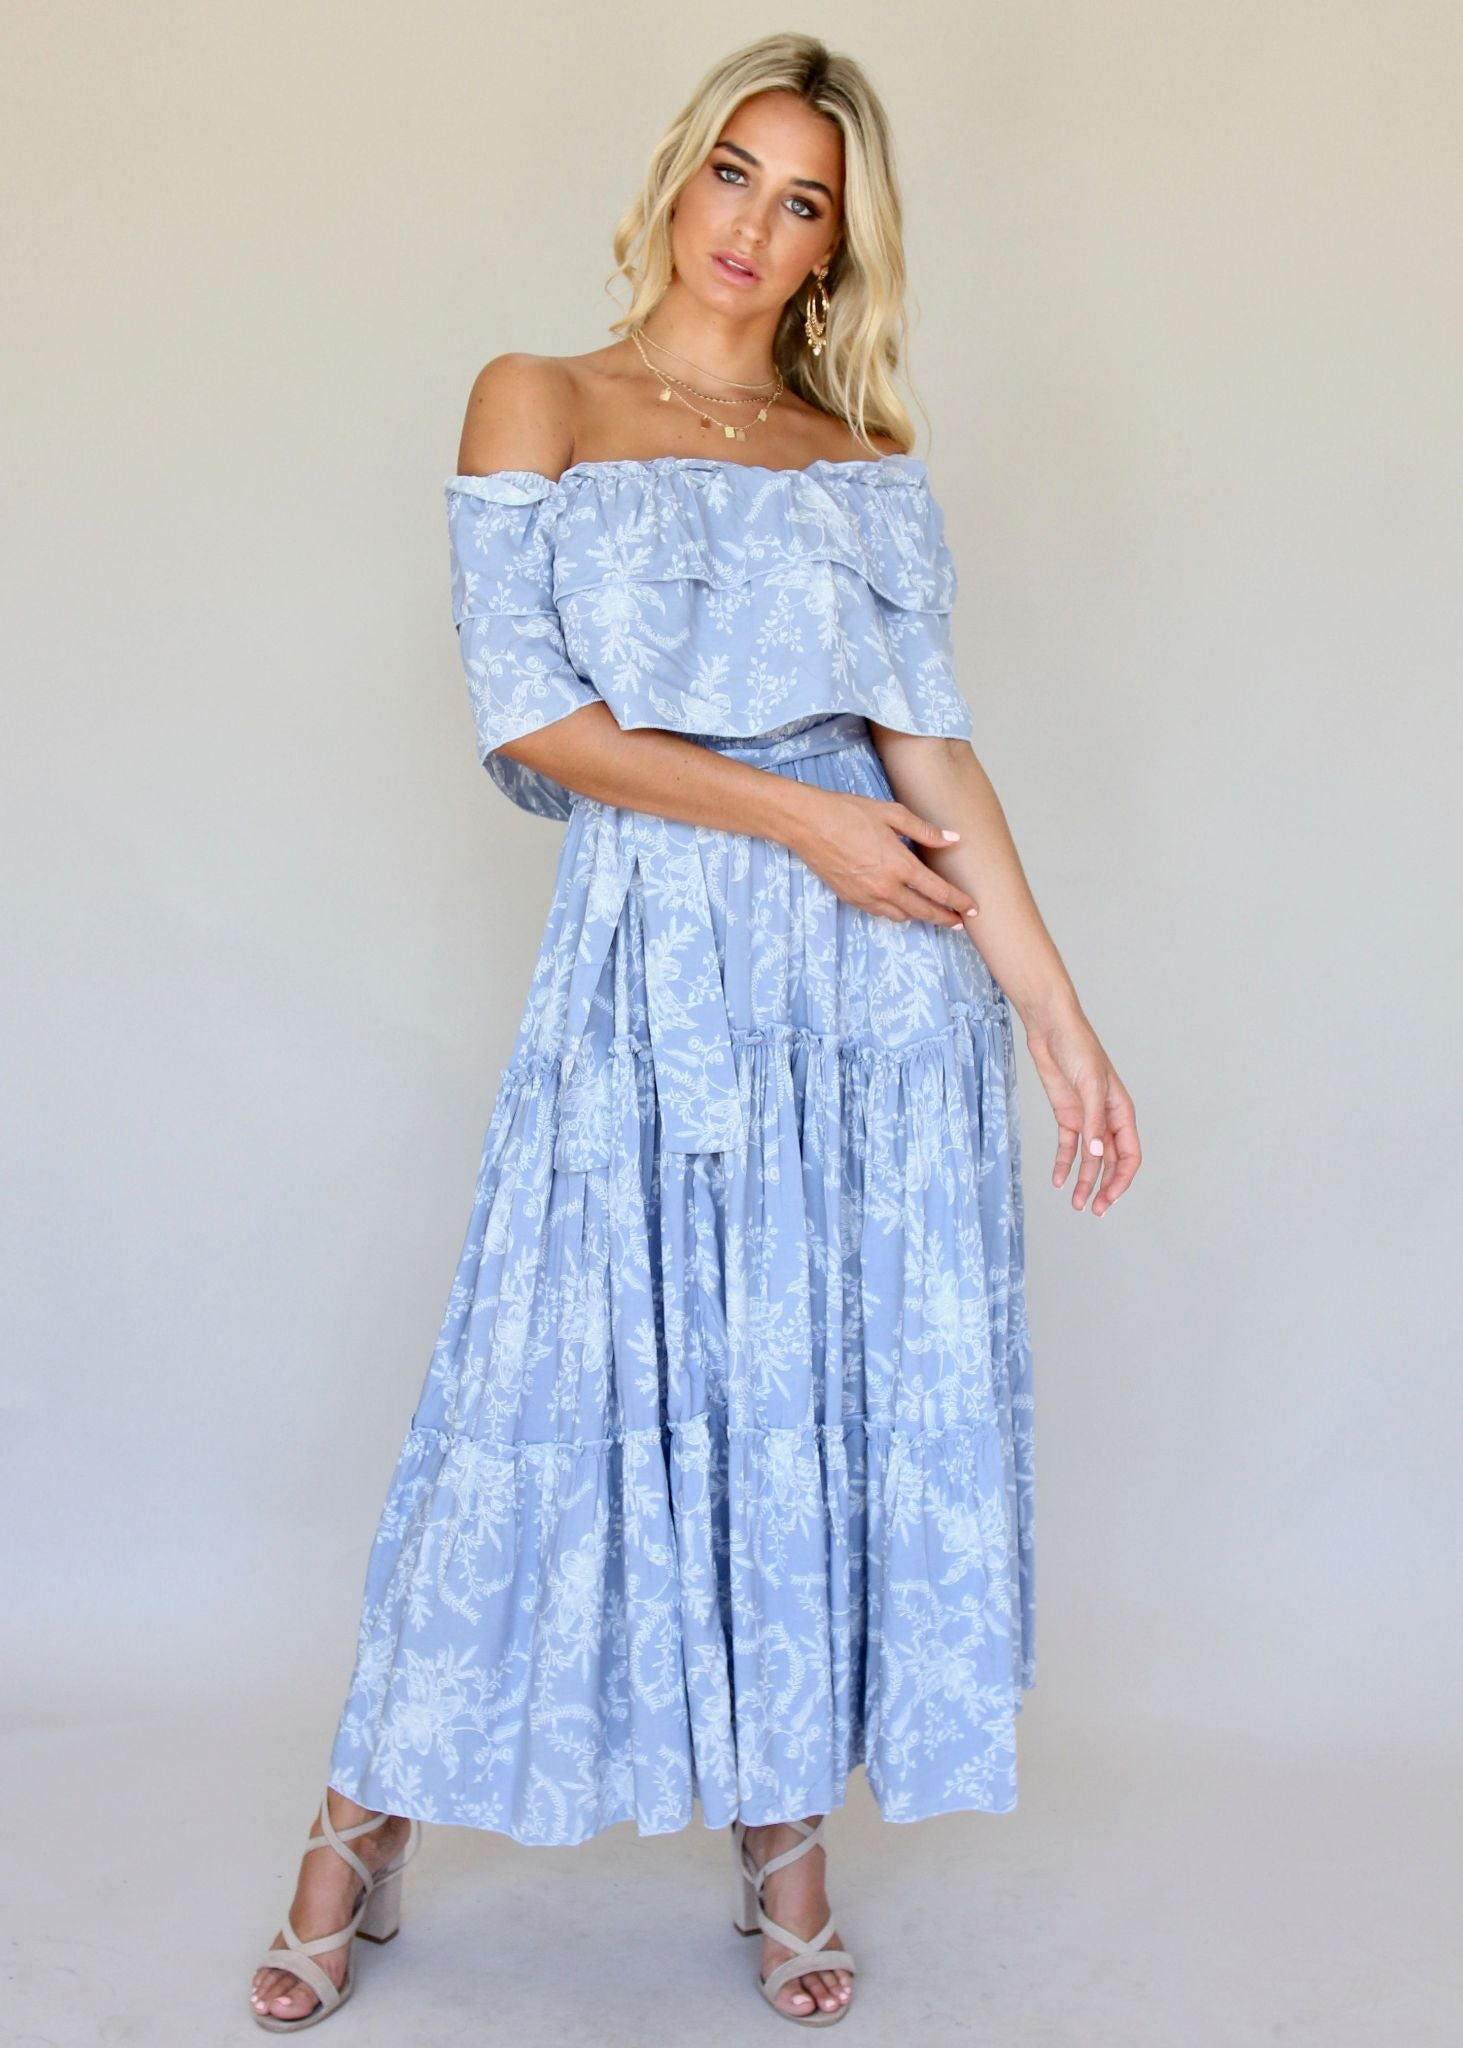 Bora Bora Maxi Dress - Cinderella